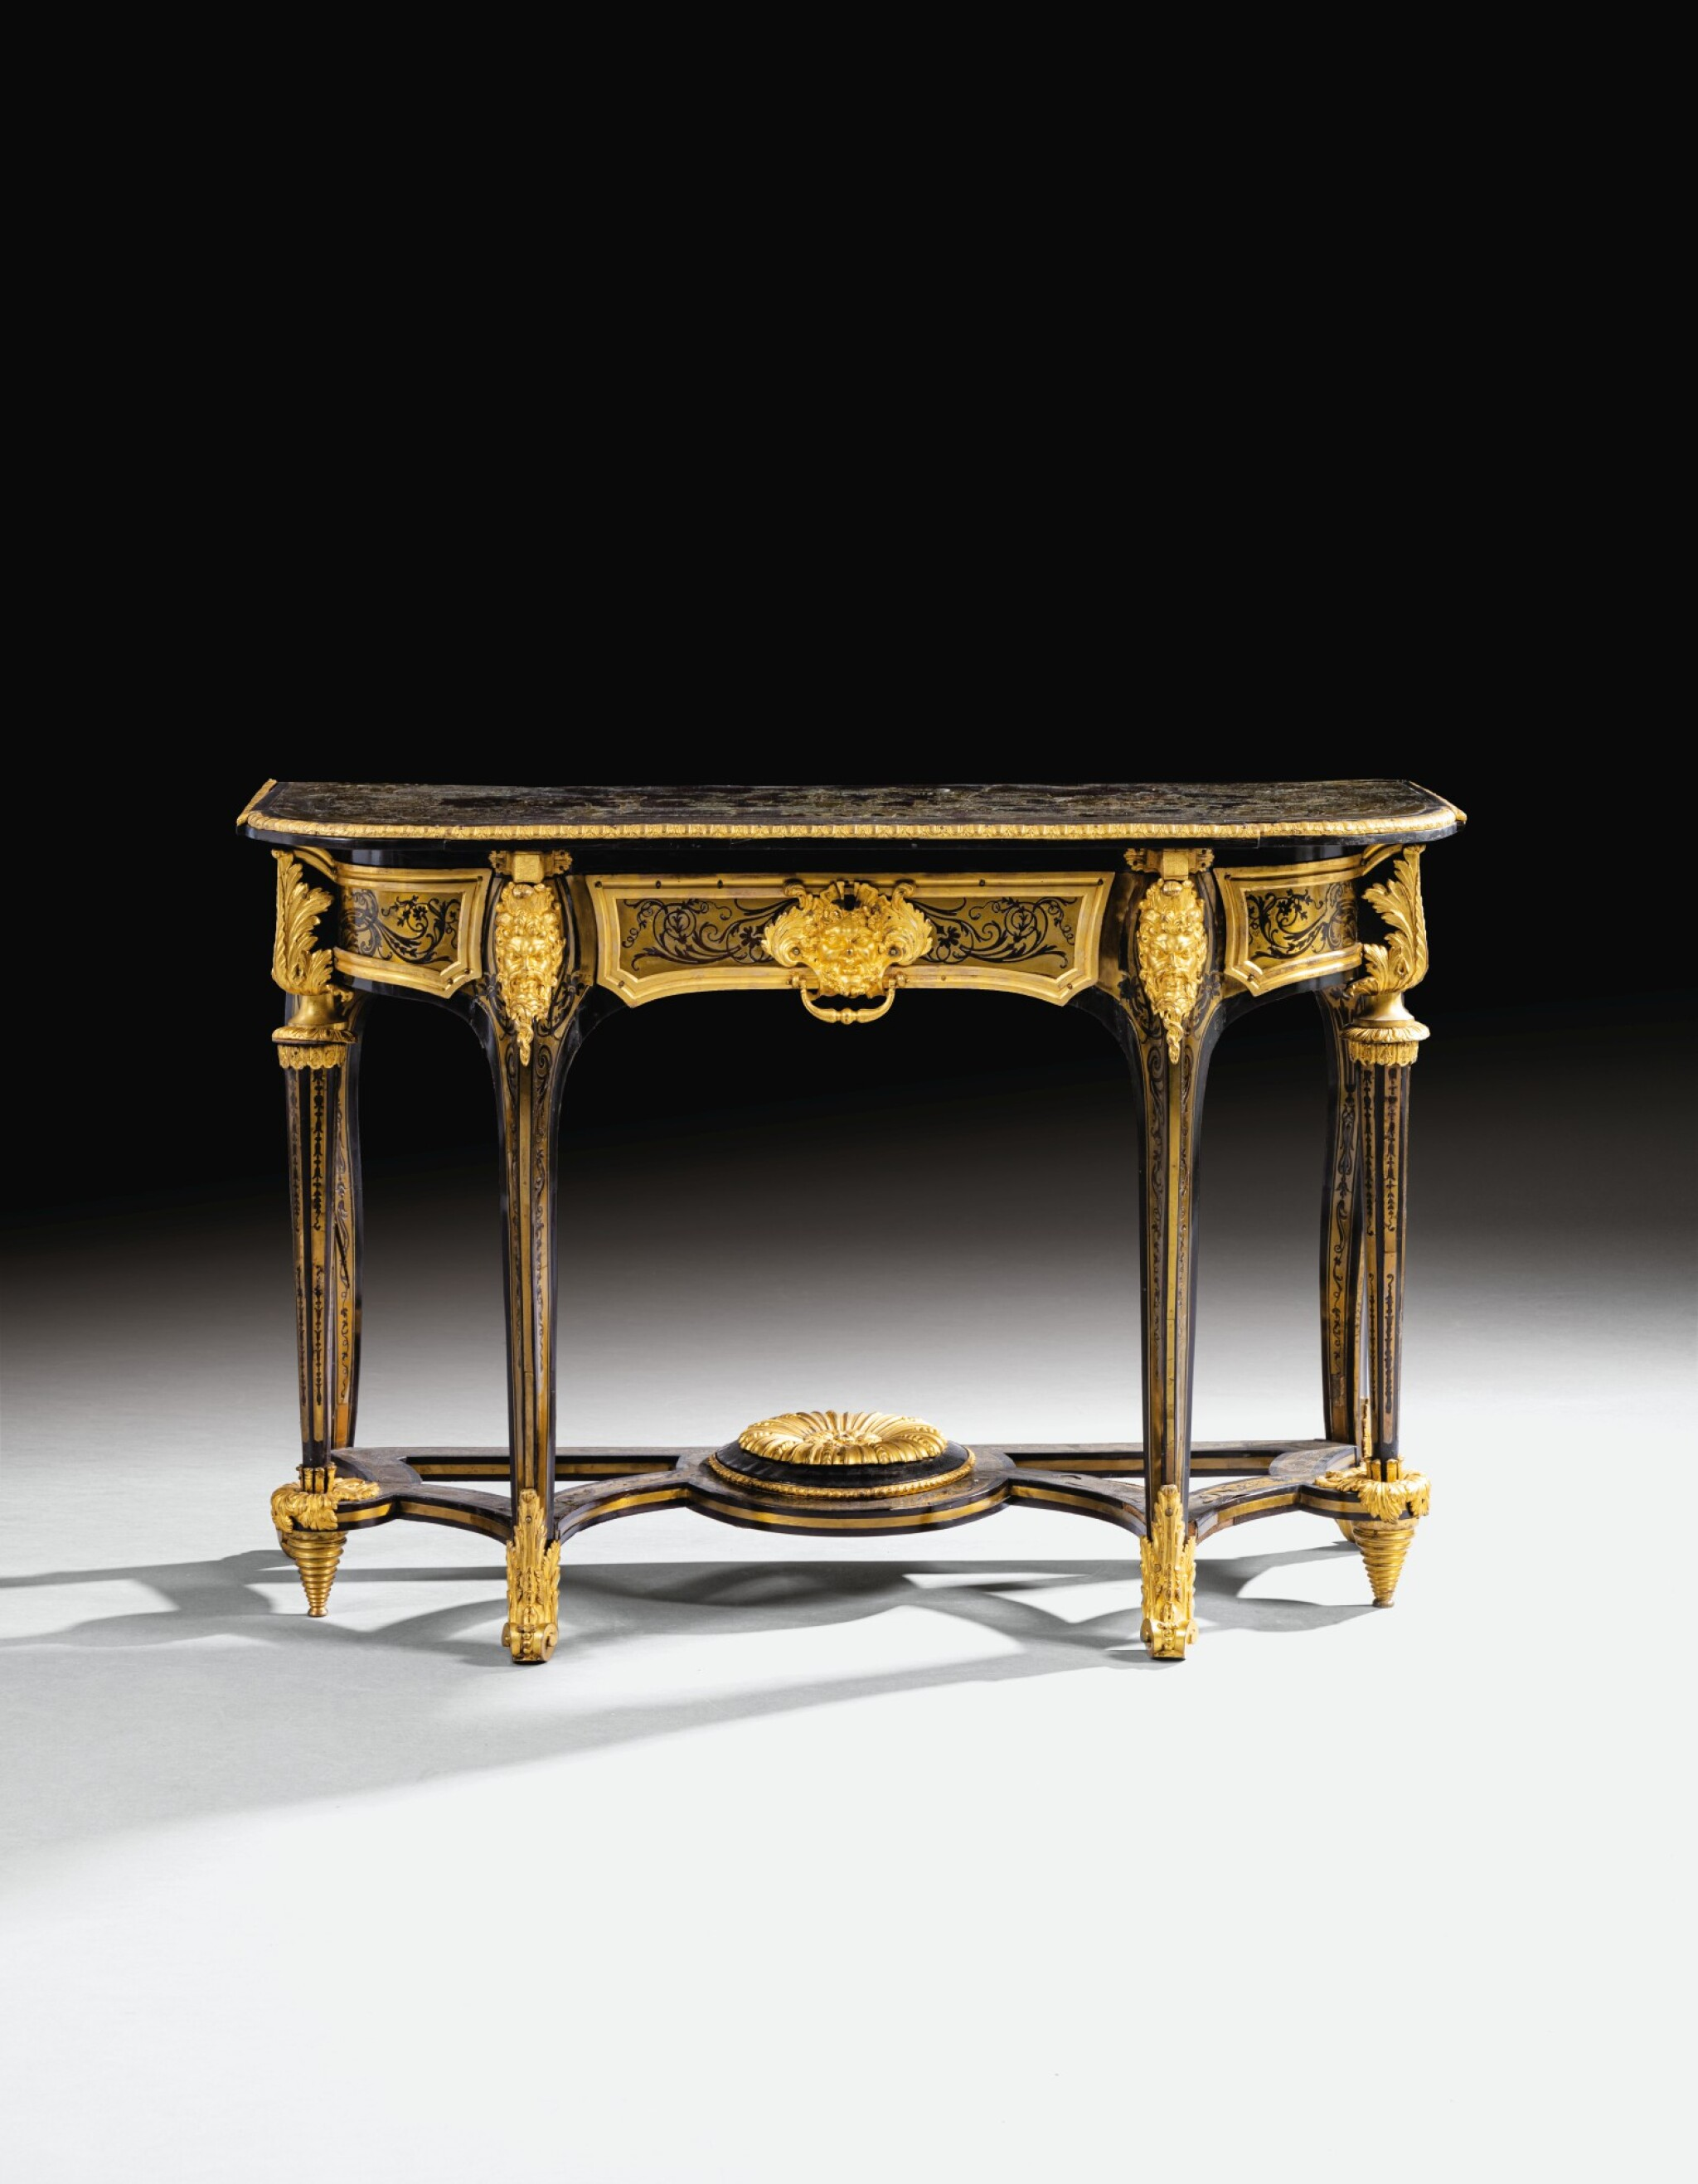 View full screen - View 1 of Lot 7. A GILT-BRONZE MOUNTED, BRASS-INLAID AND BROWN TORTOISESHELL BOULLE MARQUETRY CONSOLE TABLE, LOUIS XIV, ATTRIBUTED TO ANDRÉ-CHARLES BOULLE AND HIS WORKSHOP, CIRCA 1710-1720 | TABLE À SIX PIEDS EN MARQUETERIE D'ÉCAILLE BRUNE, LAITON GRAVÉS, PLACAGE D'ÉBÈNE ET BRONZE DORÉ D'ÉPOQUE LOUIS XIV, VERS 1710-1720, ATTRIBUÉE À ANDRÉ-CHARLES BOULLE ET SON ATELIER.